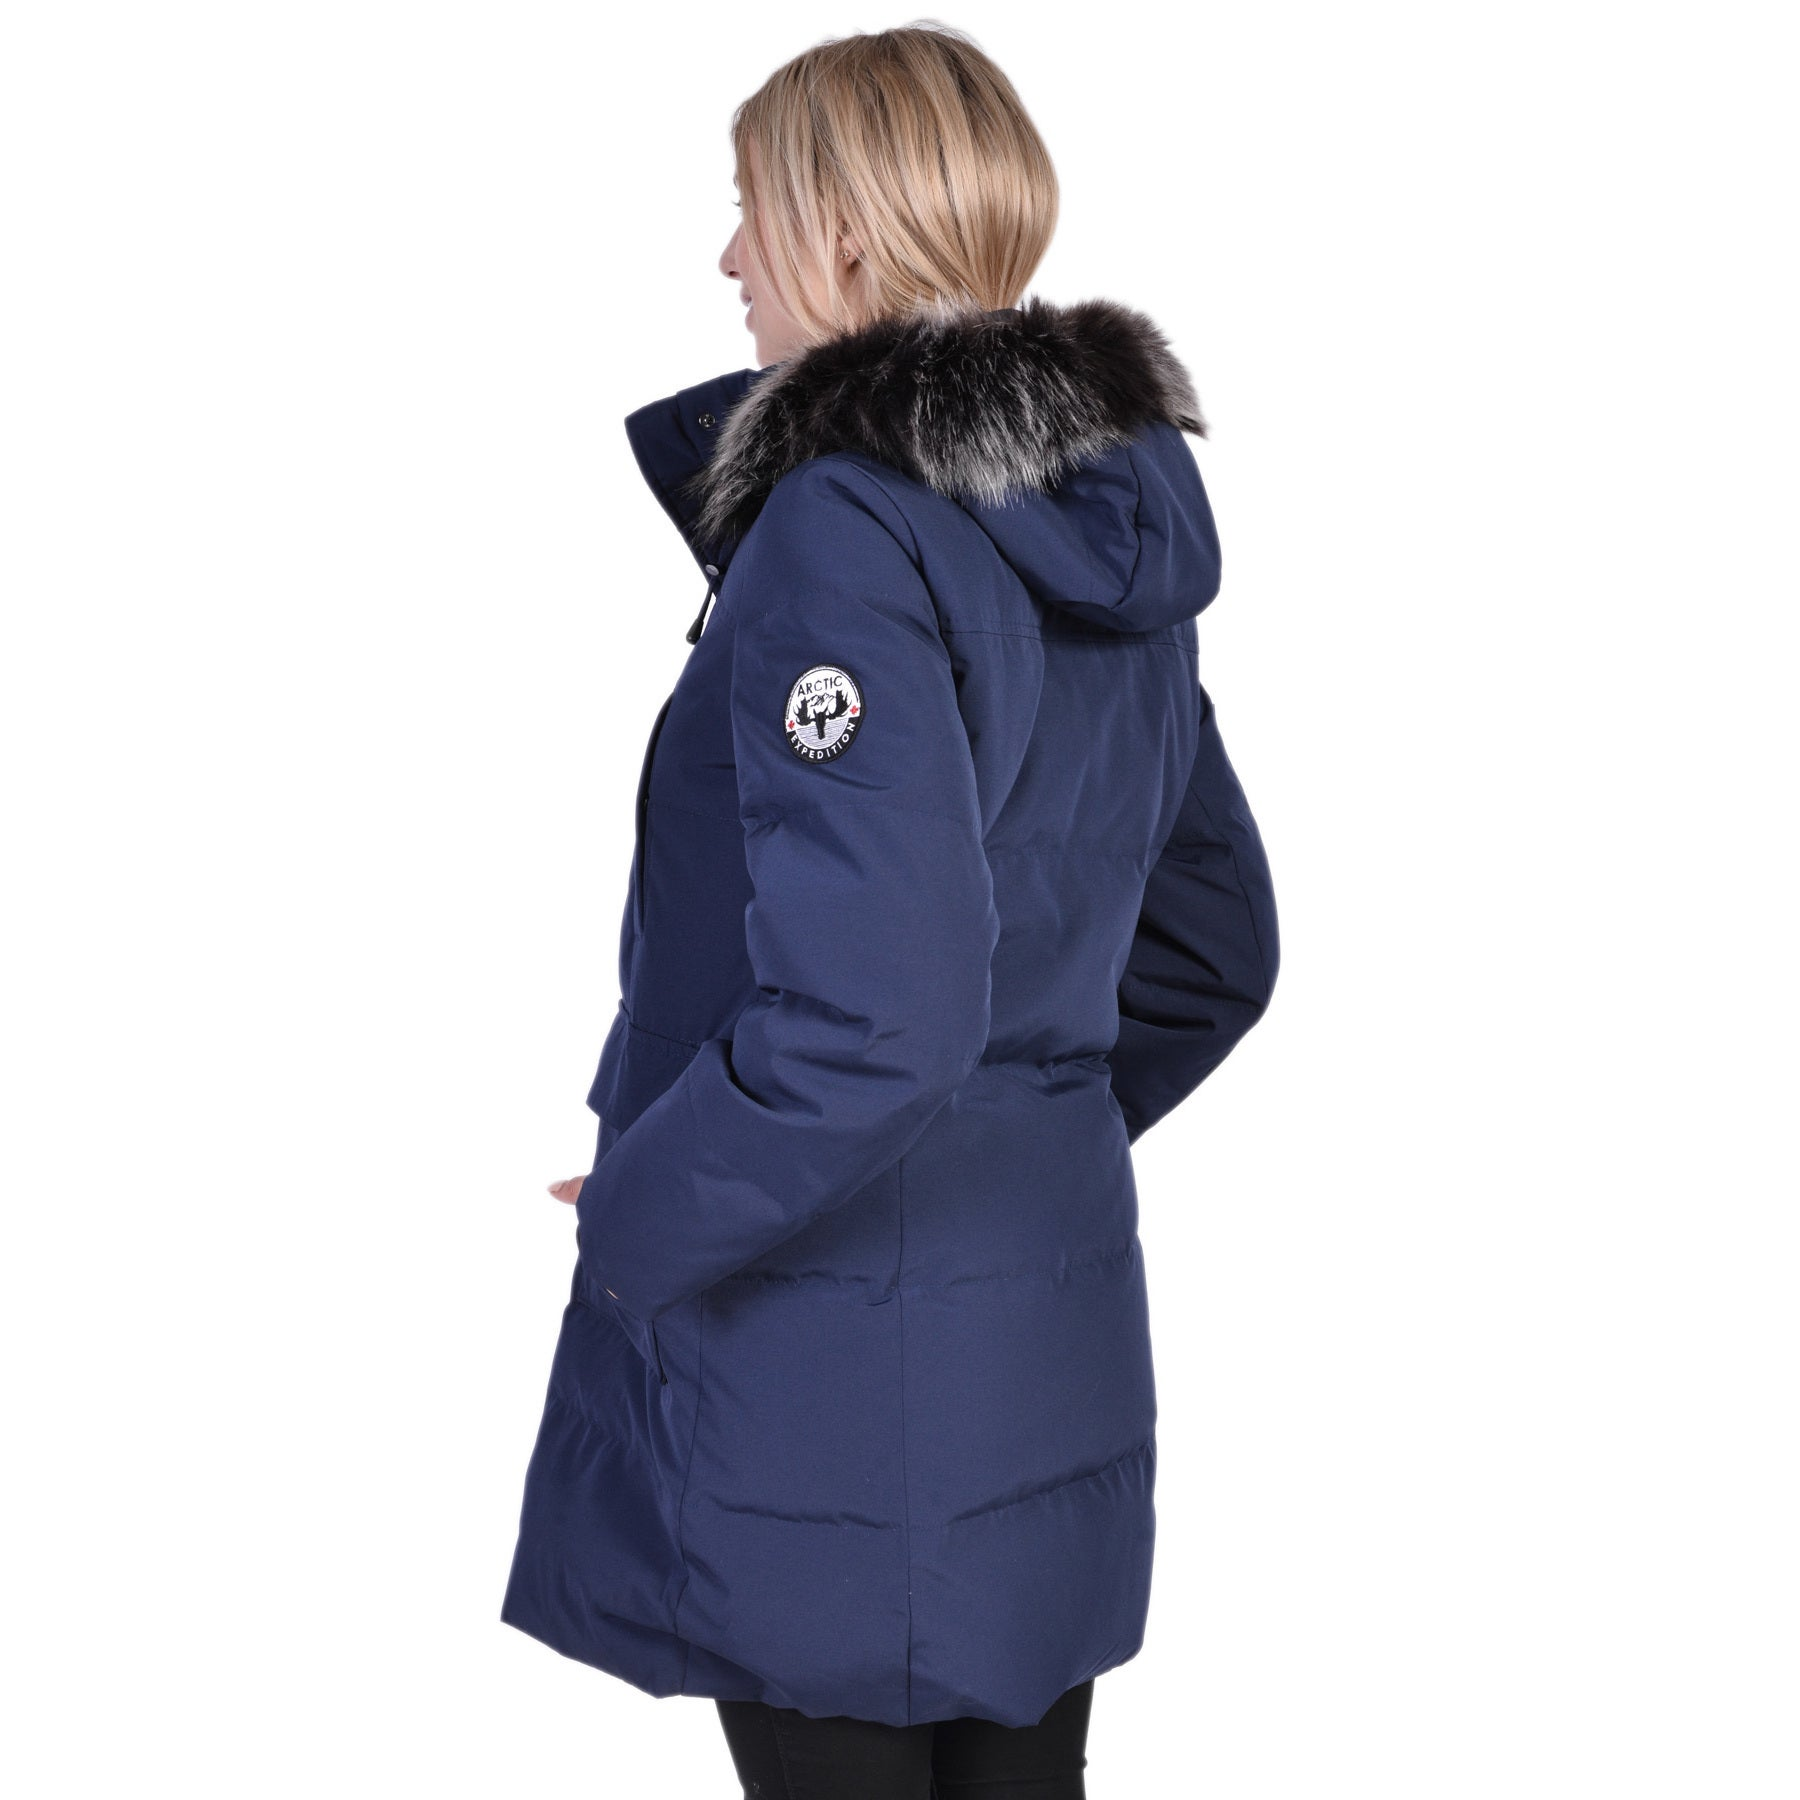 4616ef76555 Nuage-Womens -Arctic-Expedition-Down-Coat-9460cff1-6d12-4612-954d-08e3d4794364.jpg